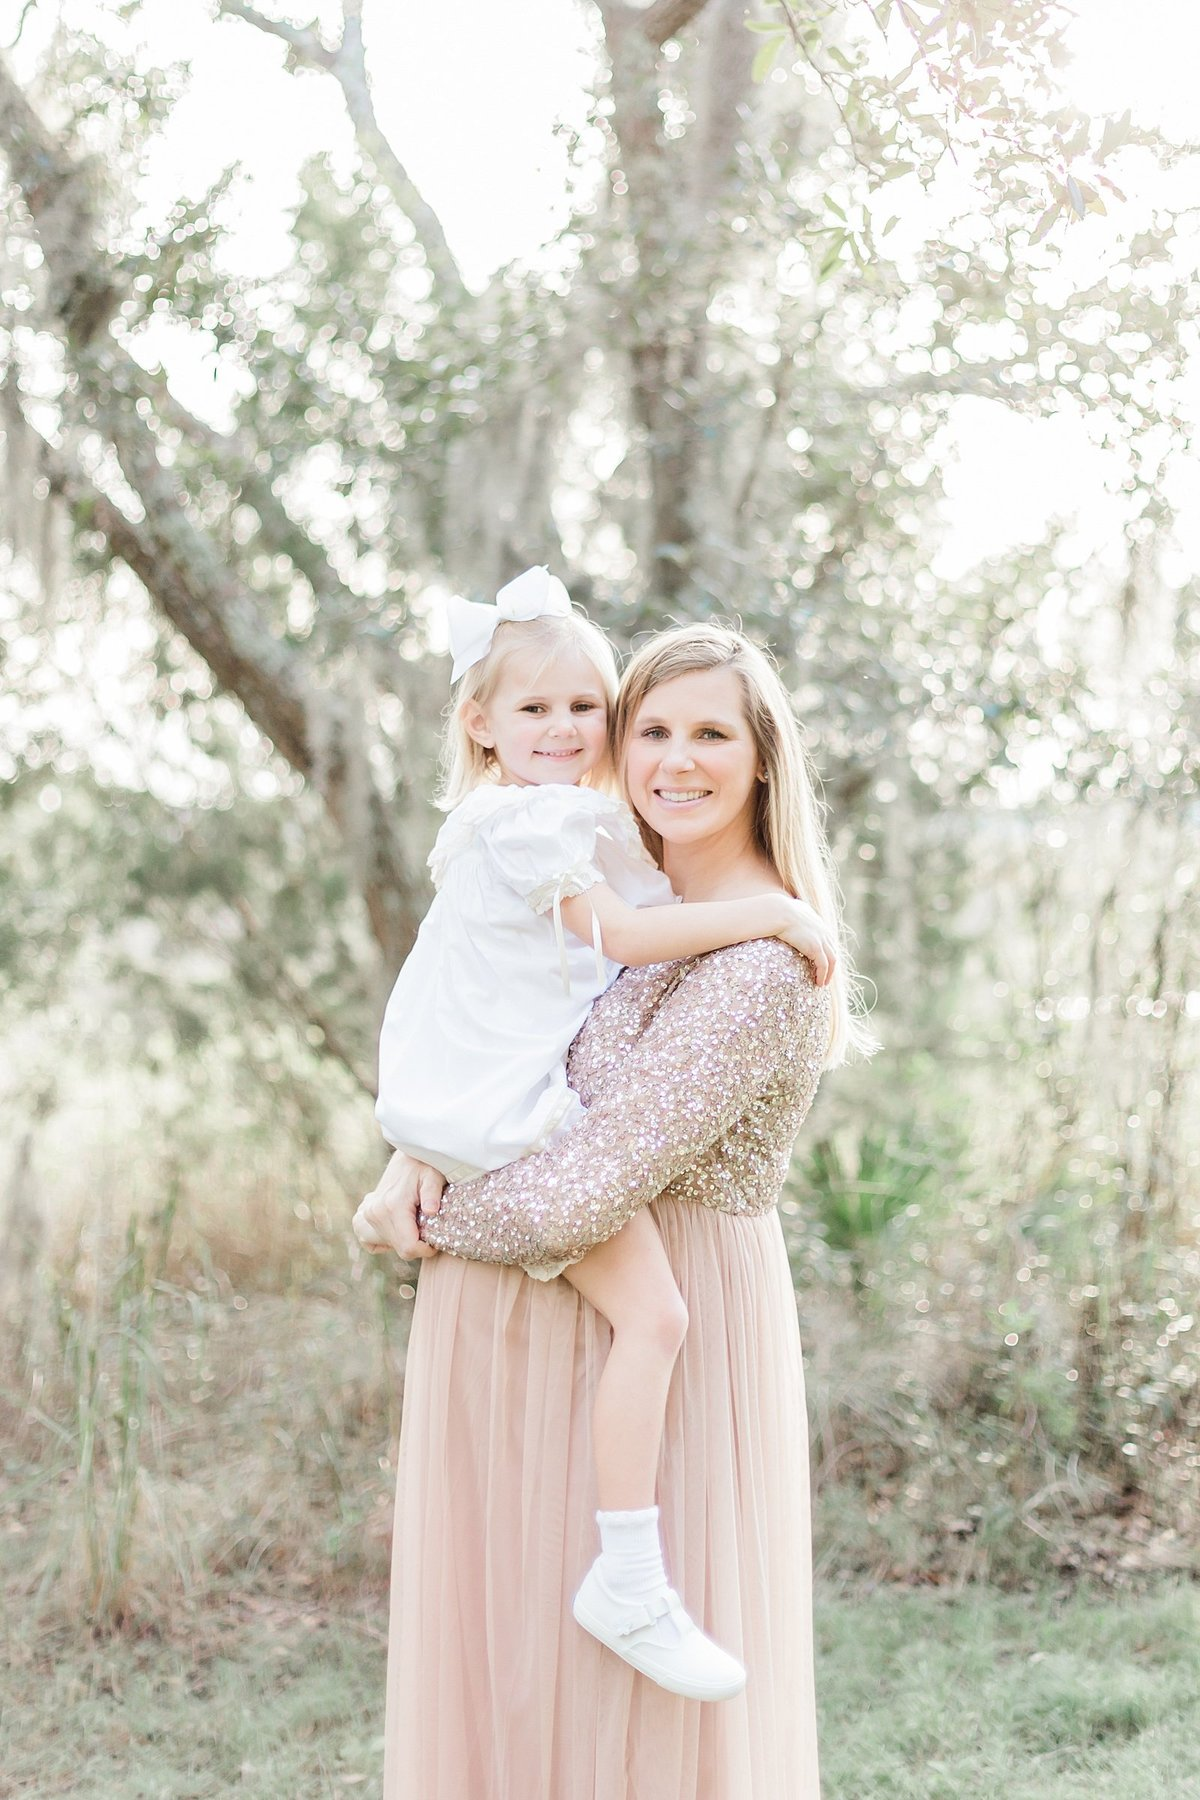 Charleston-Maternity-Photographer-James-Island-Maternity-Session-James-Island-Maternity-Photographer-Charleston-Family-Maternity-Photography-6